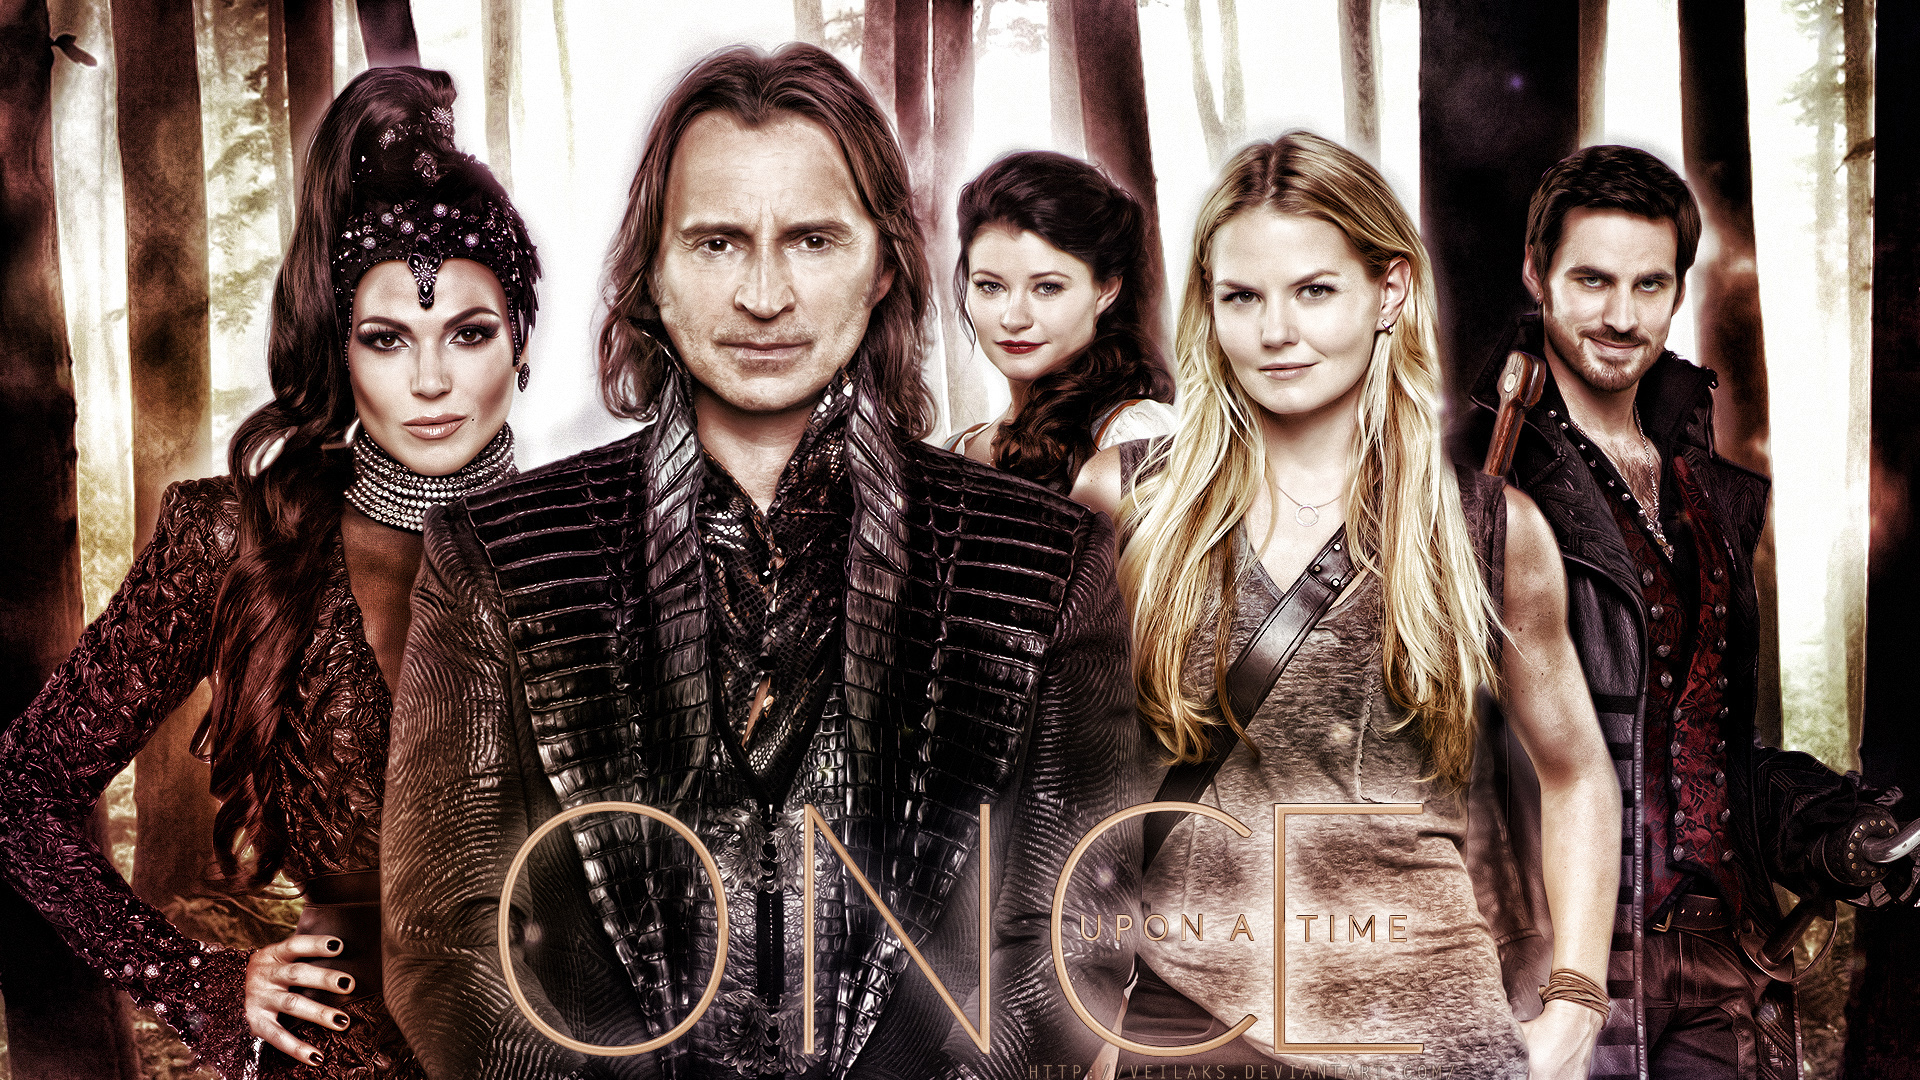 Free Download Once Upon A Time Once Upon A Time Wallpaper 36961247